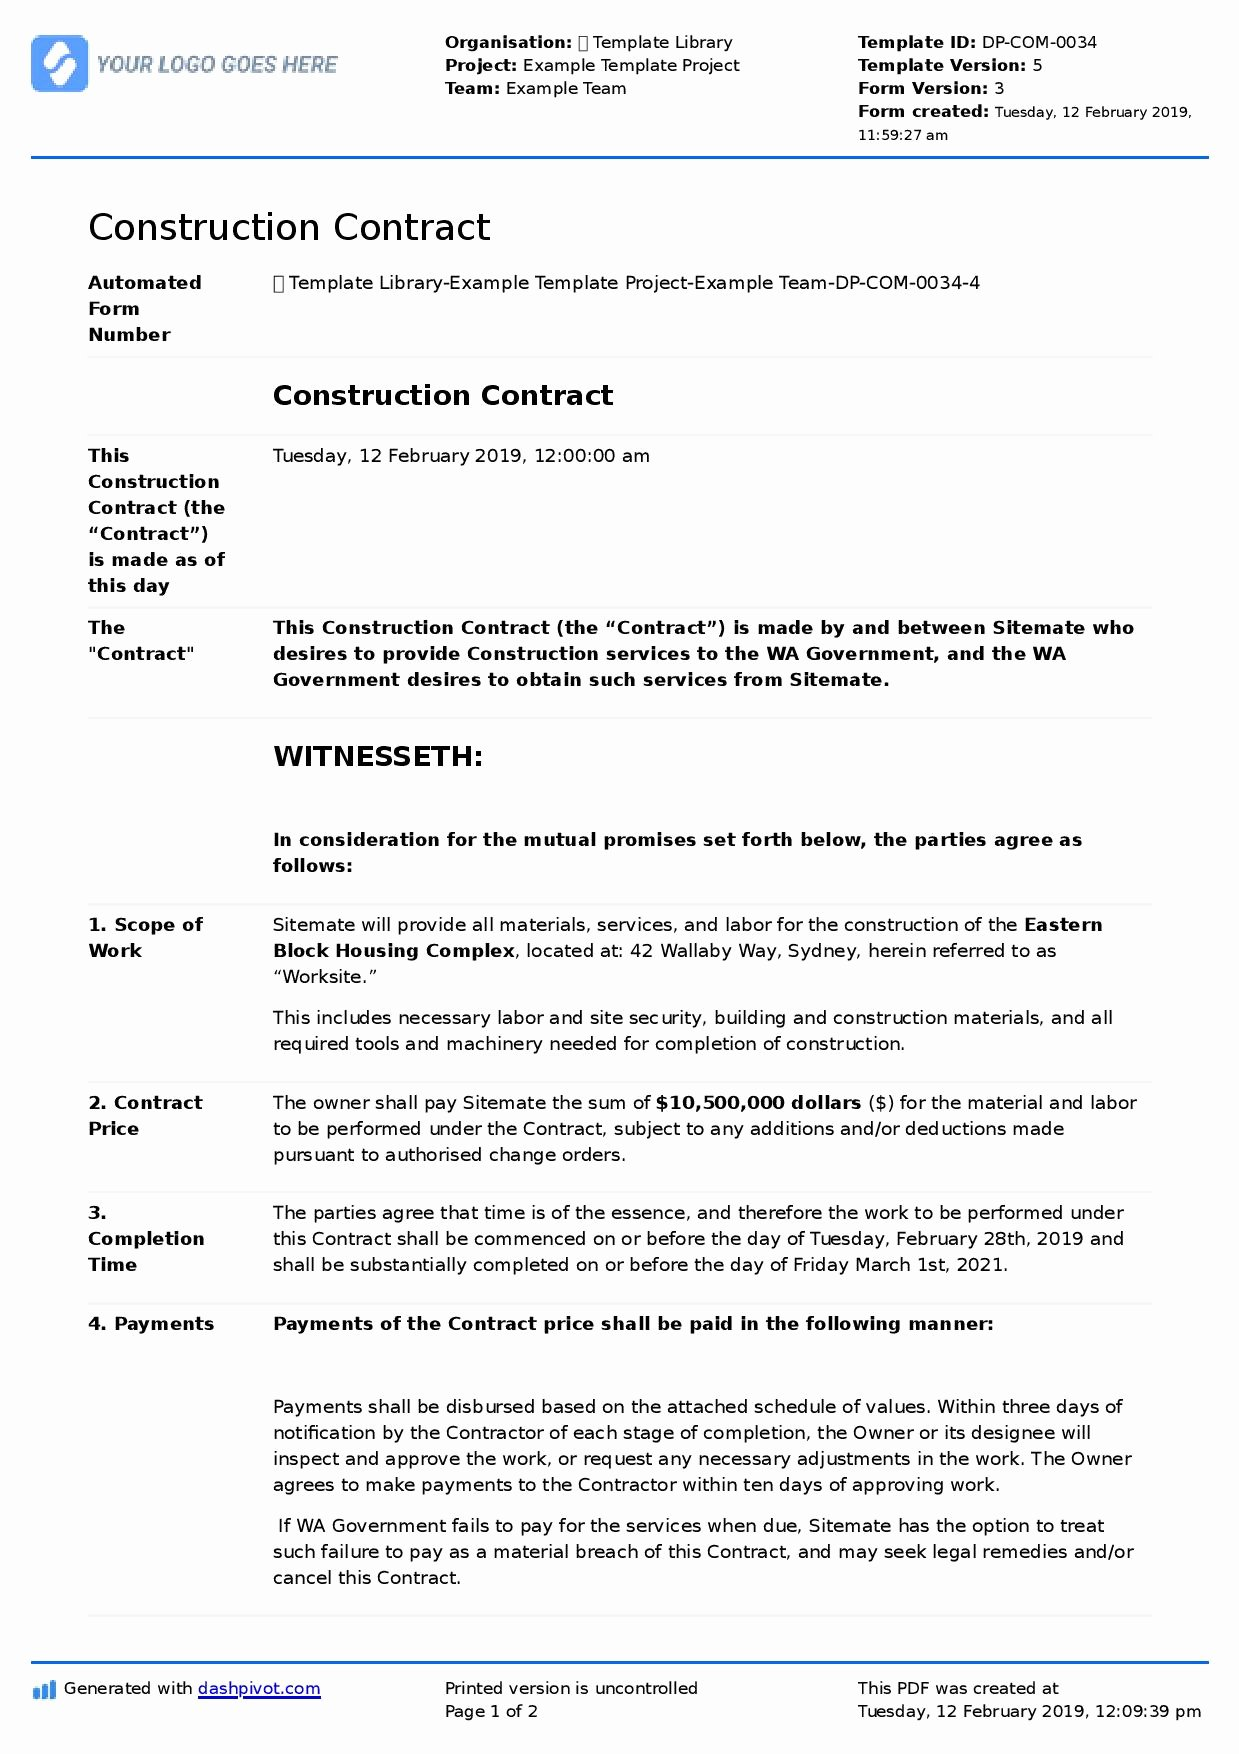 Free Roofing Contract Template Awesome Construction Contract Sample Better Than Word and Pdf